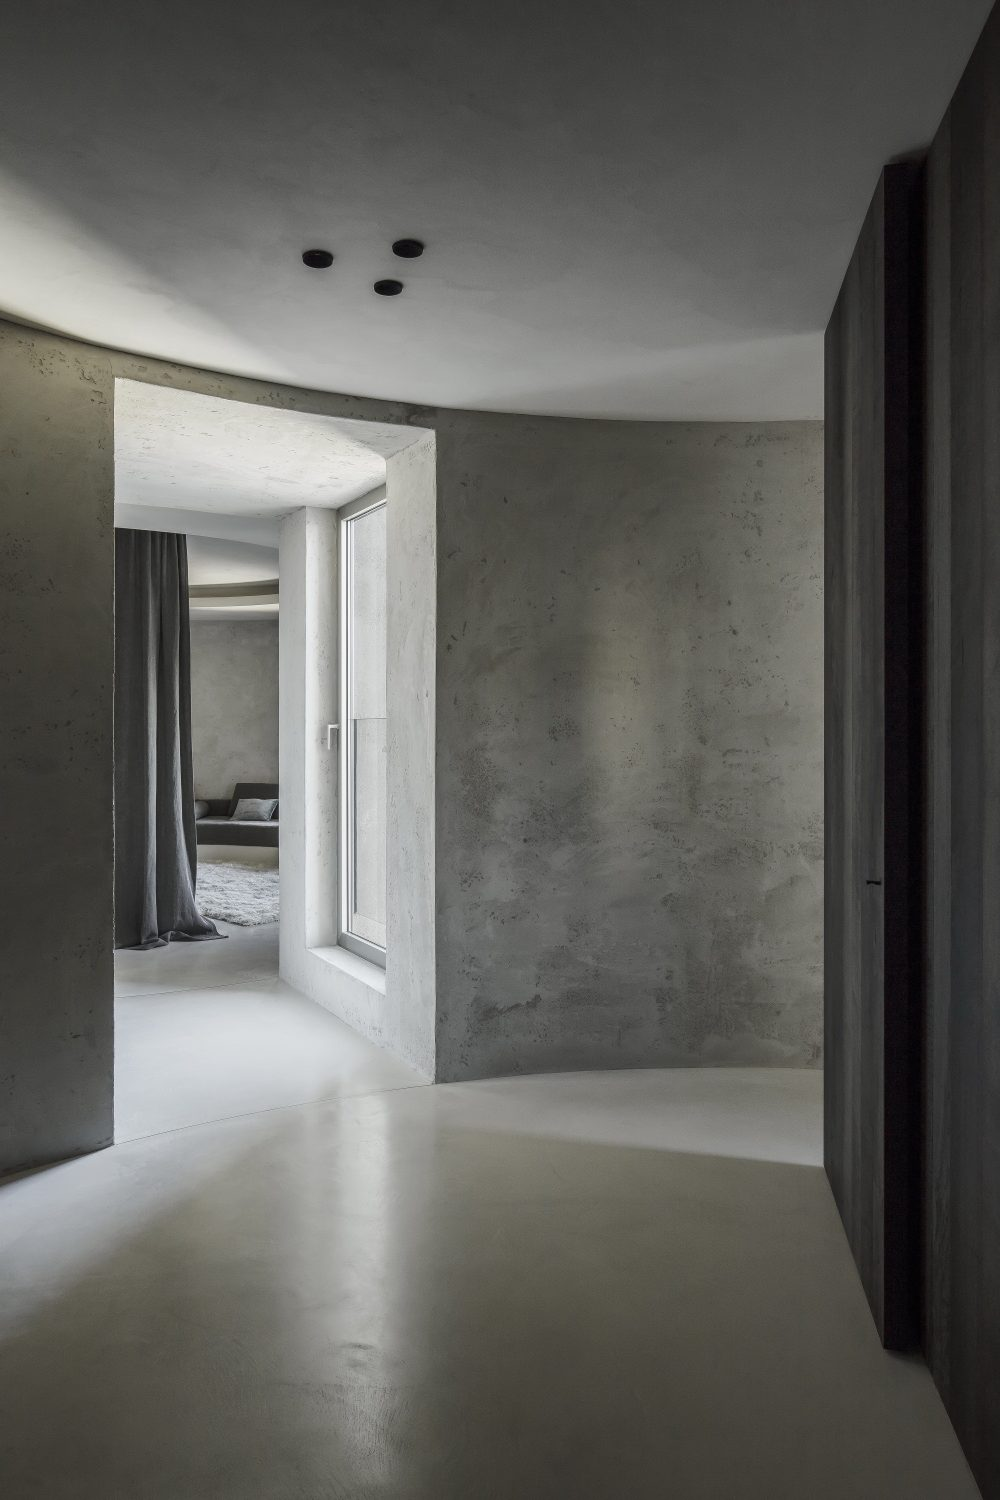 Silo Apartment M-M | Monochrome Apartment by Arjaan De Feyter